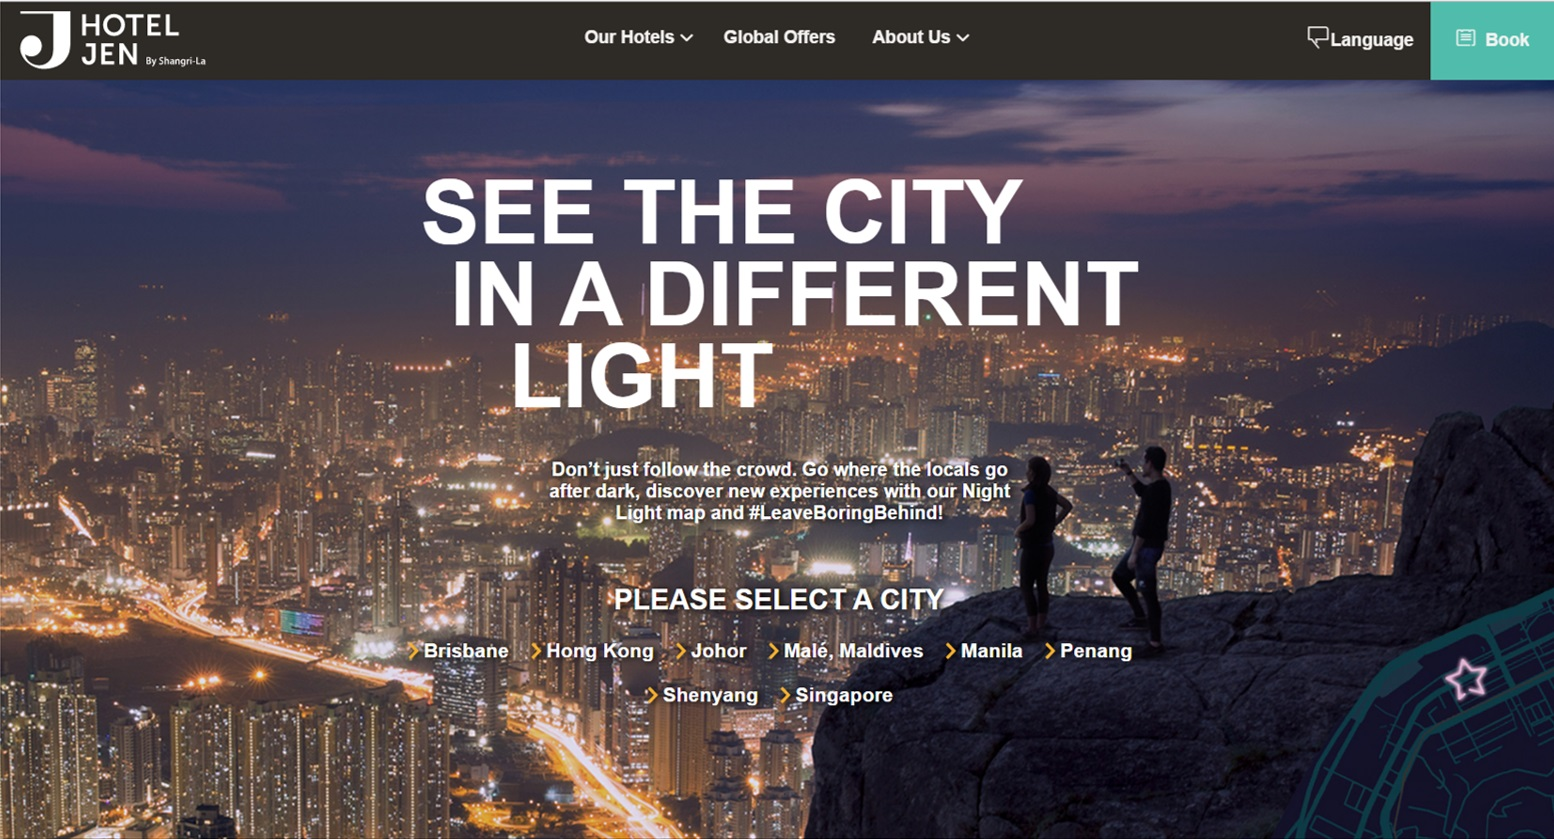 New interactive map lights up nightlife at hotel jen ttg asia new interactive map lights up nightlife at hotel jen gumiabroncs Images